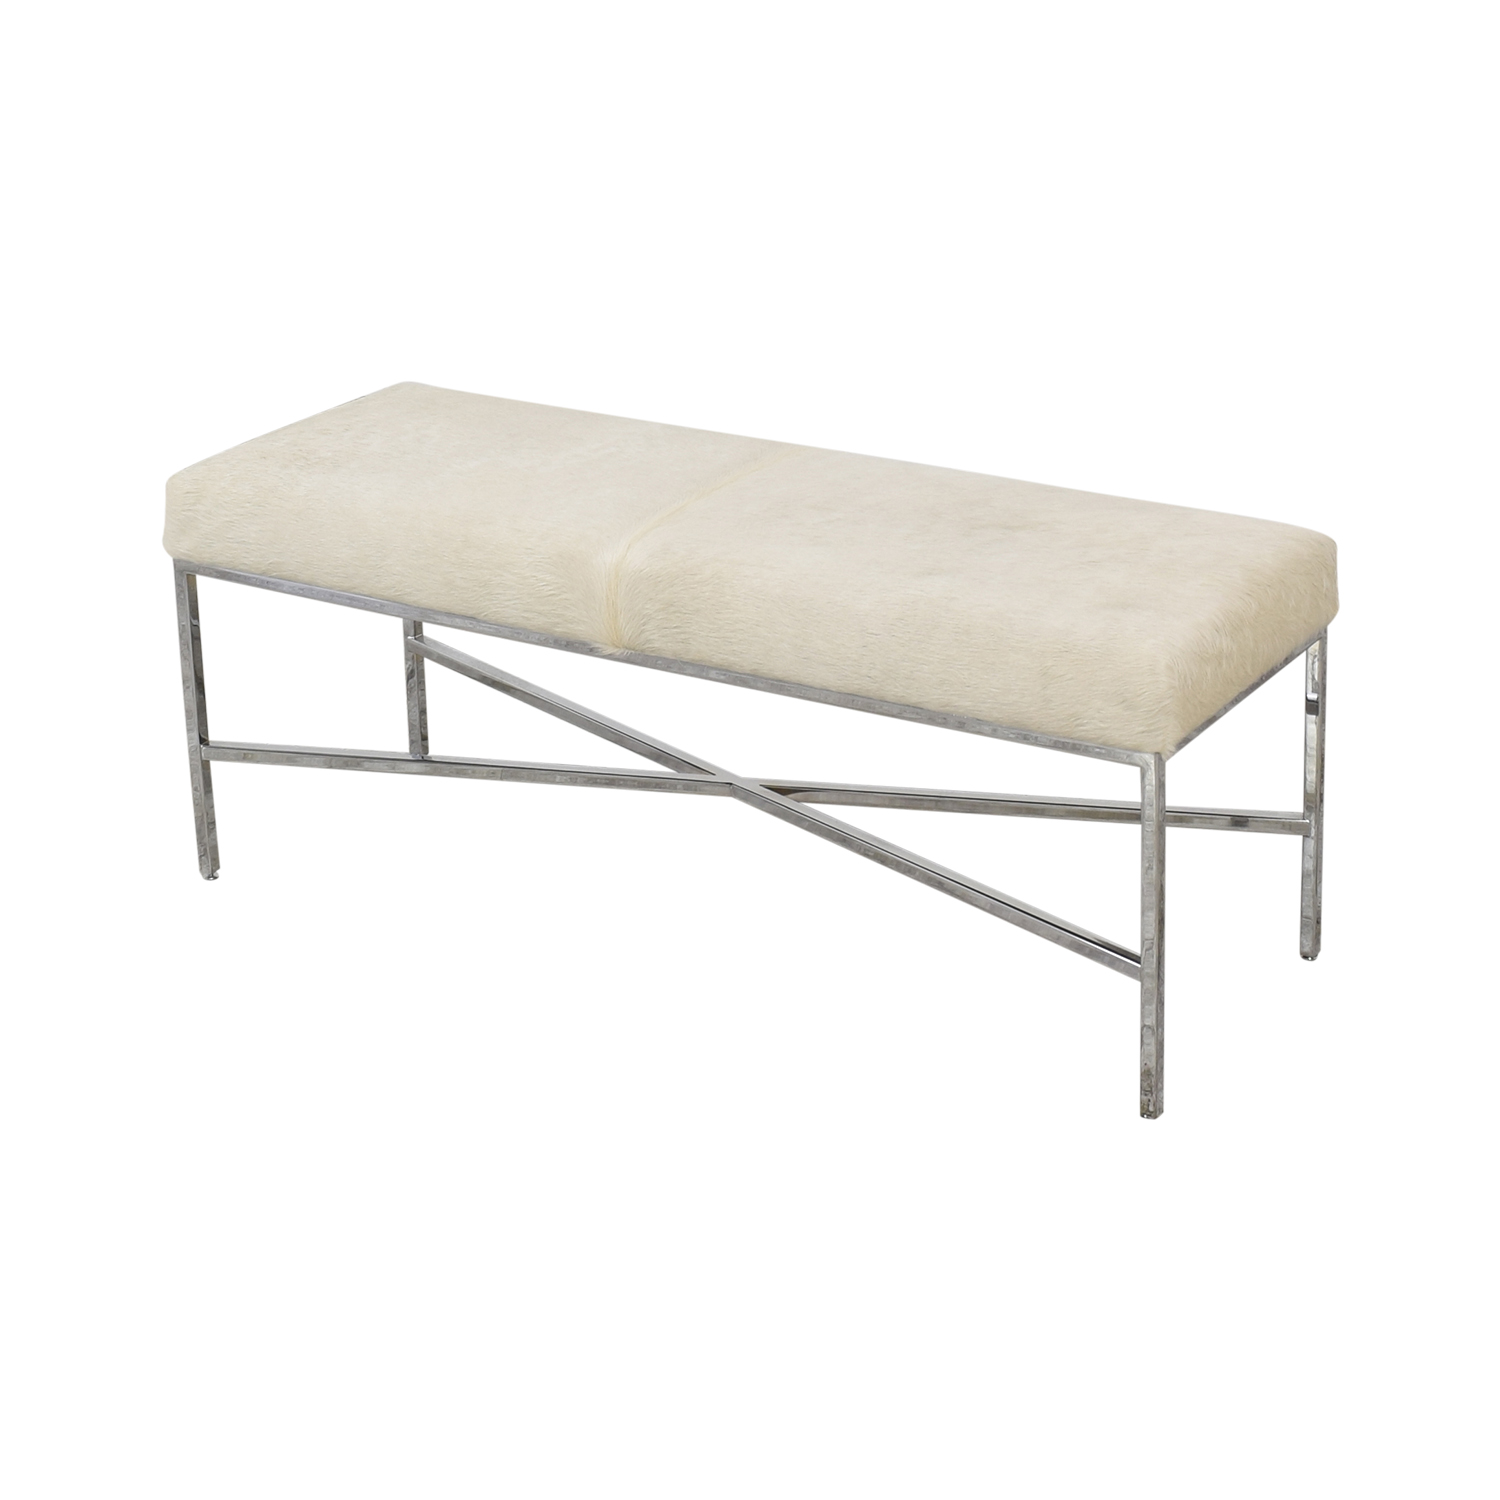 Outpost Original Outpost Original Metal Bench with Cowhide off white & silver